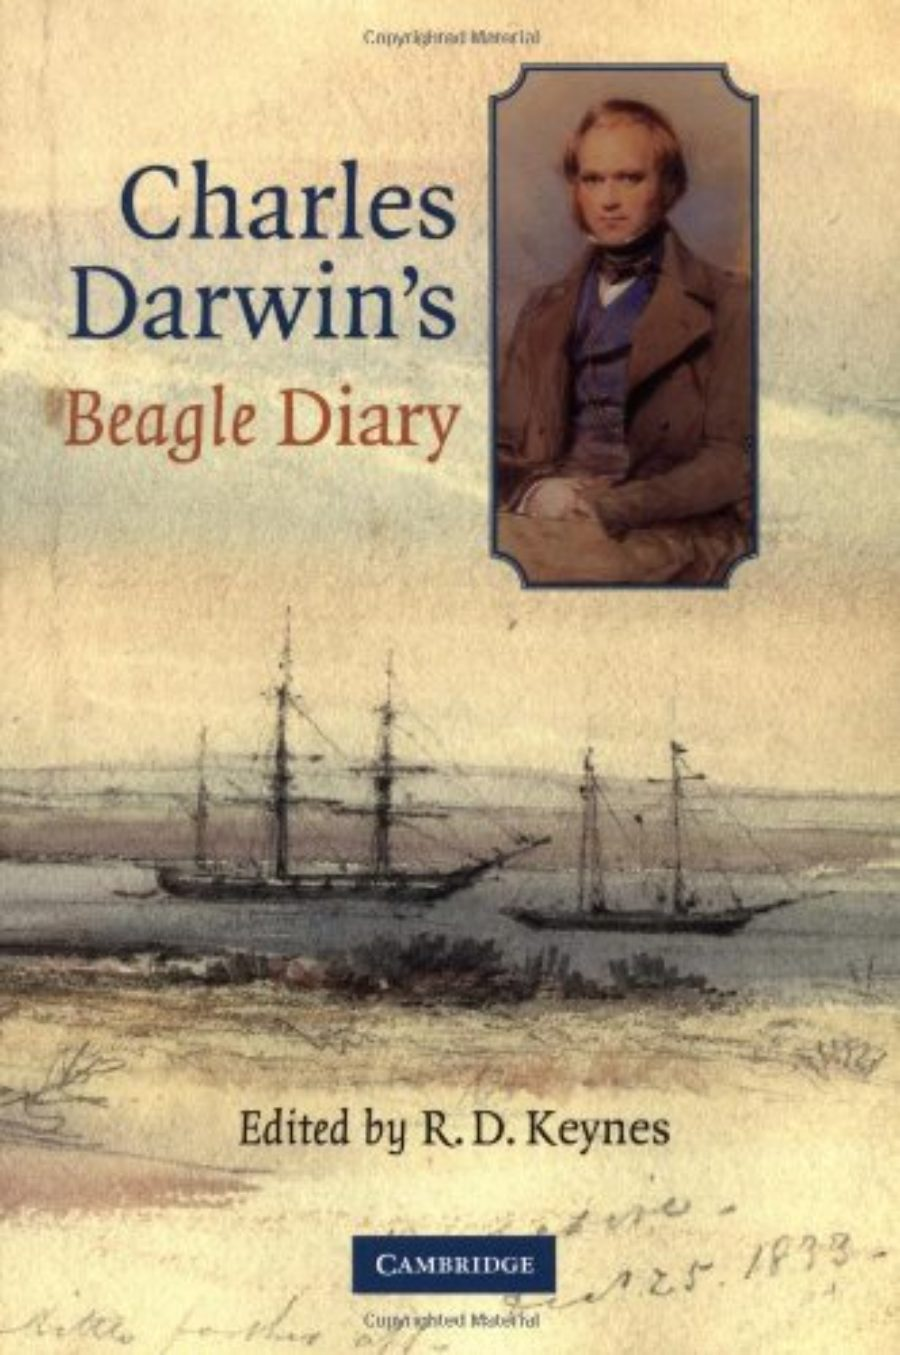 Cover of Charles Darwin's Beagle Diary